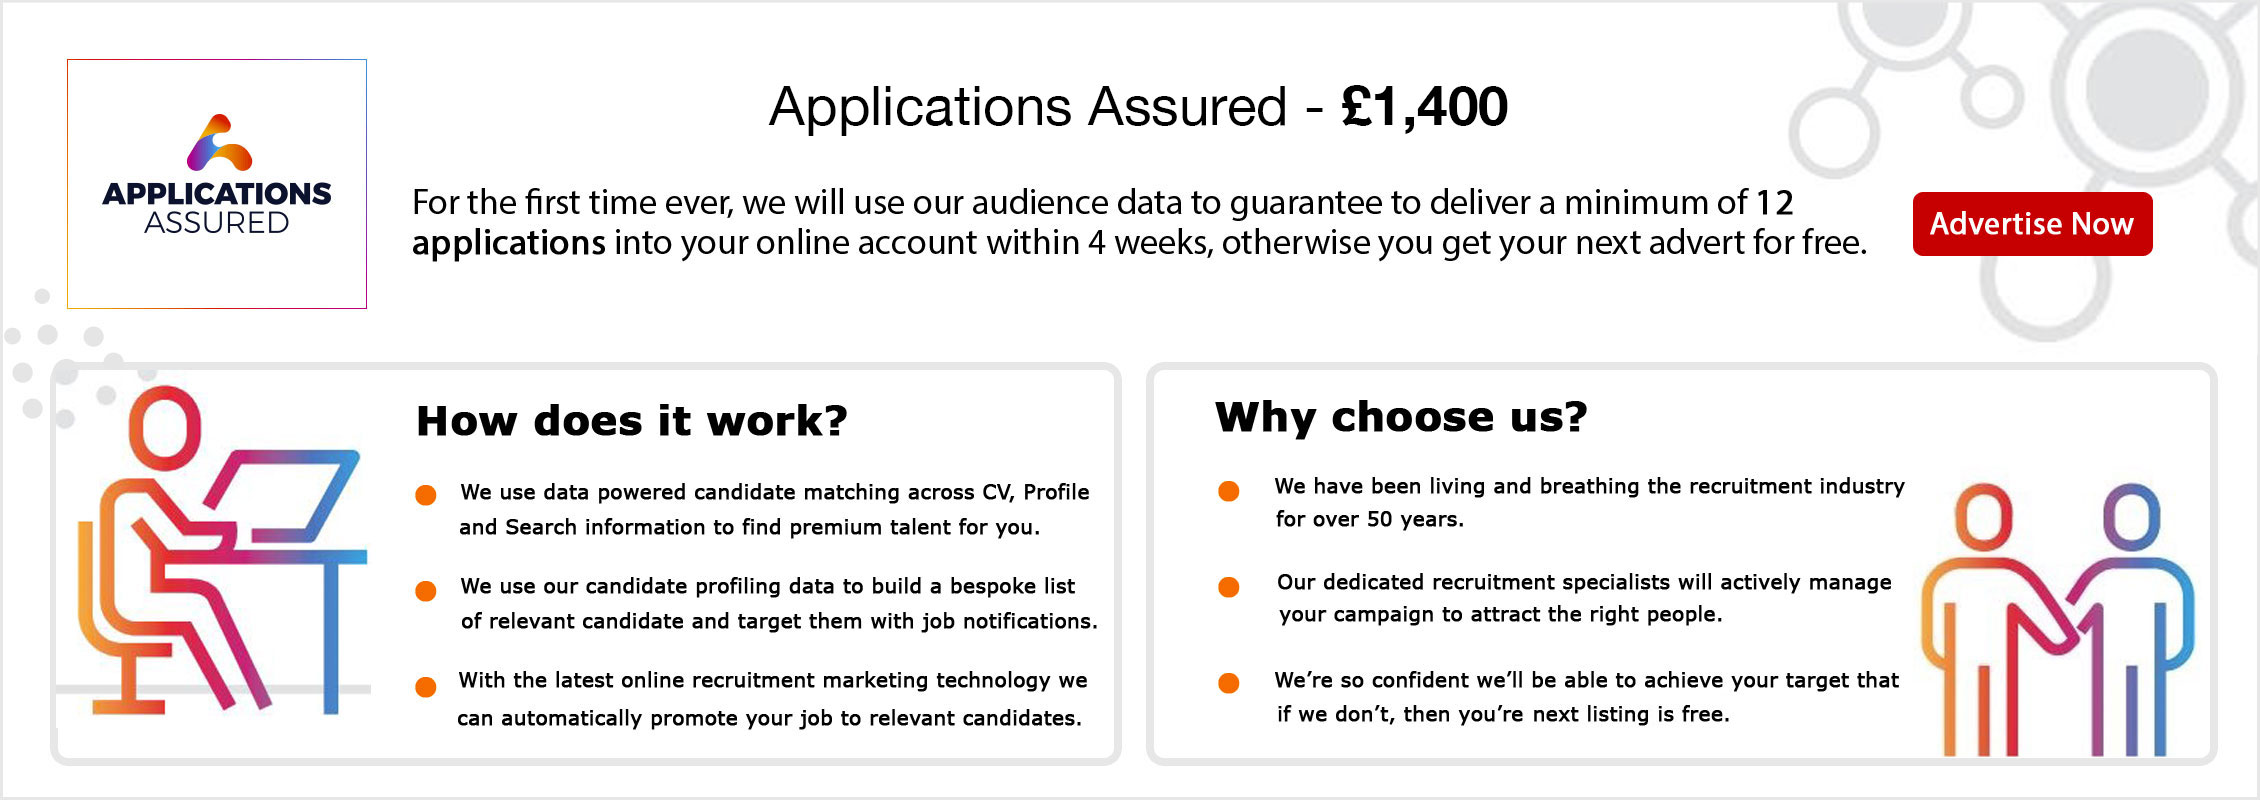 Applications Assured. £1,400. We use our audience data to guarantee to deliver a minimum of 12 applications into your online account within 4 weeks, otherwise you get your next advert for free. Advertise Now. How does it work? We use data powered candidate matching across CV, Profile and Search information to find premium talent for you. We use our candidate profiling data to build a bespoke list of relevant candidates and target them with job notifications. With the latest online recruitment marketing technology we can automatically promote your job. Why choose us? We have been living and breathing the recruitment industry for over 50 years. Our dedicated recruitment specialists will actively manage your campaign to attract the right people.